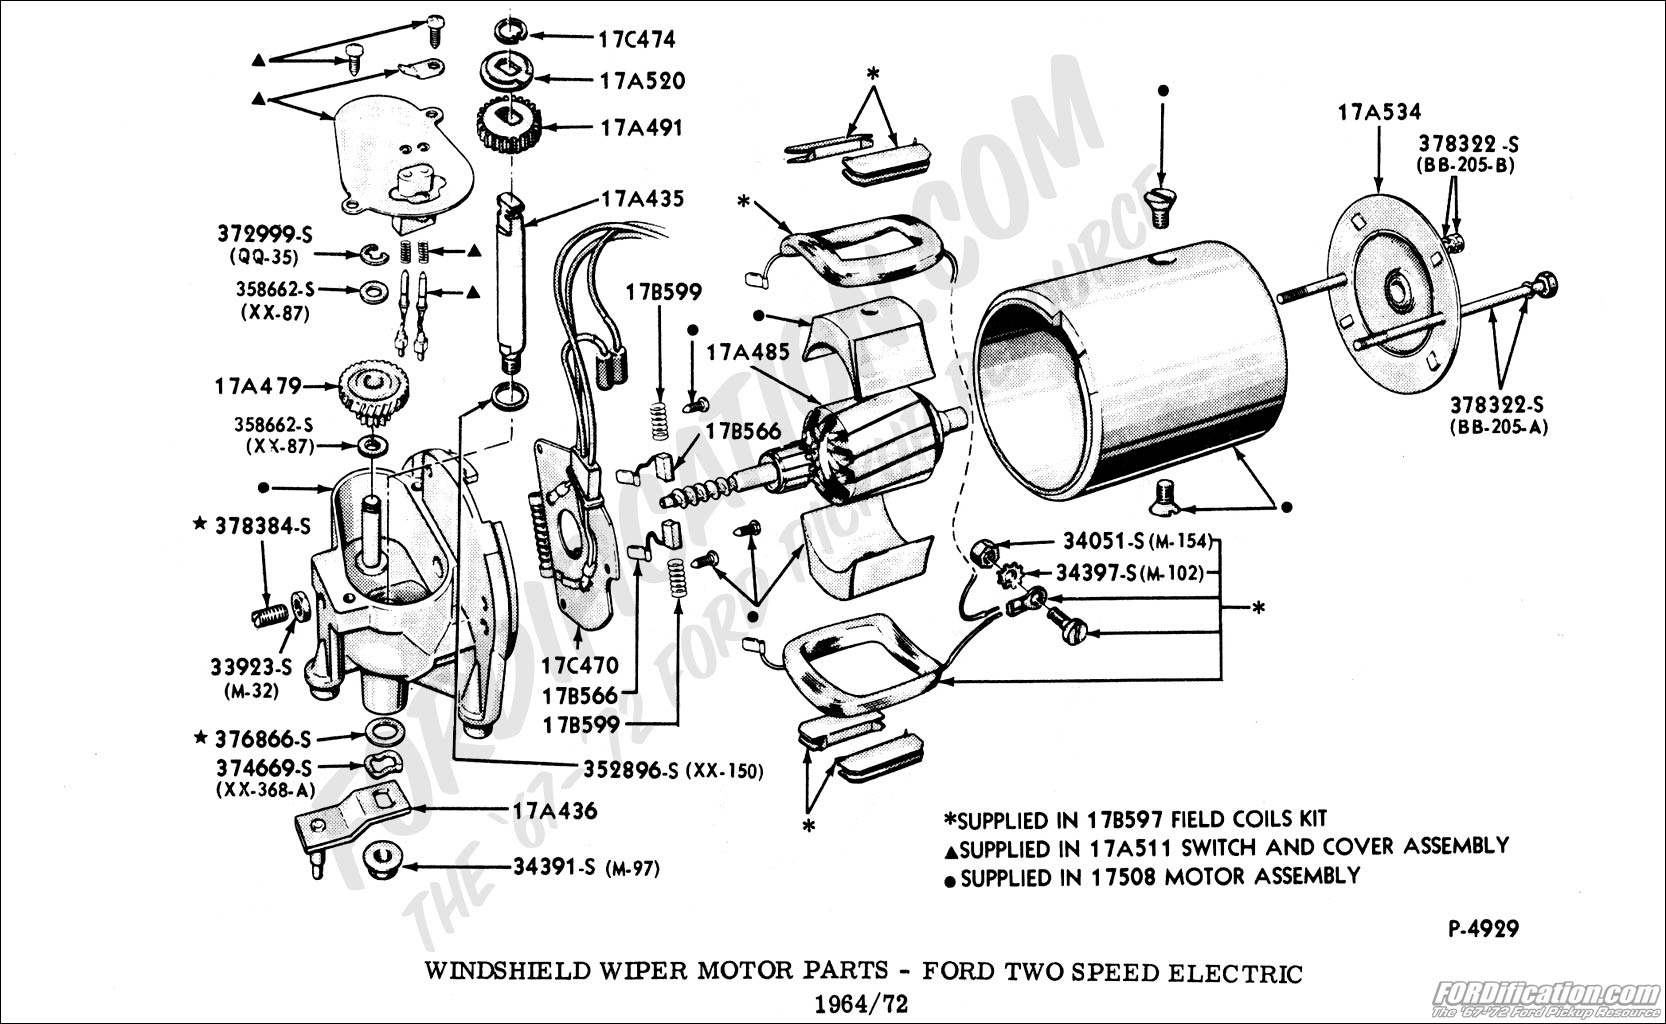 Ford Truck Technical Drawings And Schematics Section I Ranger Starter Motor Wiring Harness Windshield Wiper Parts